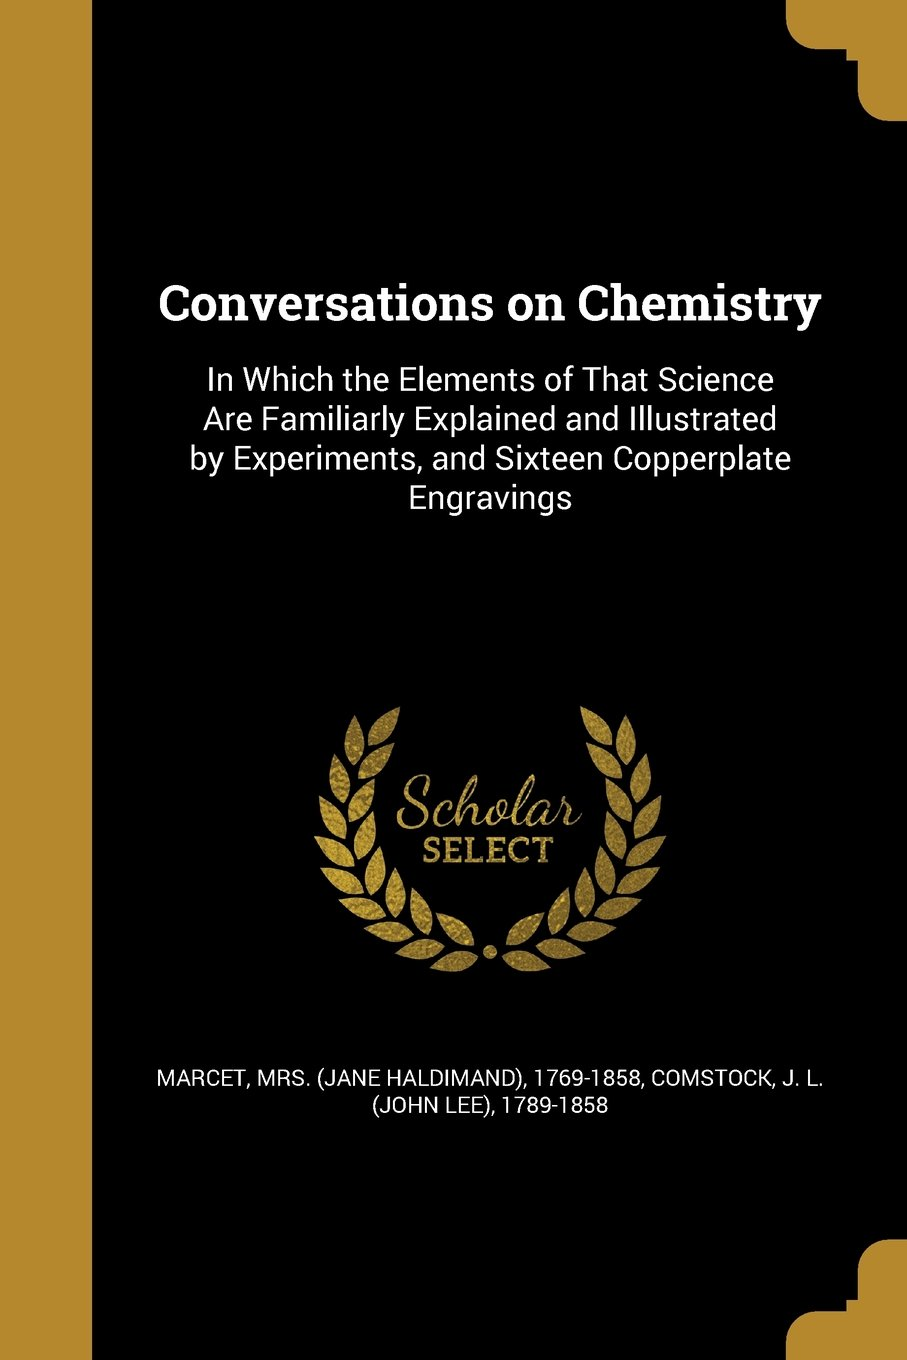 Conversations on Chemistry: In Which the Elements of That Science Are Familiarly Explained and Illustrated by Experiments, and Sixteen Copperplate Engravings ebook